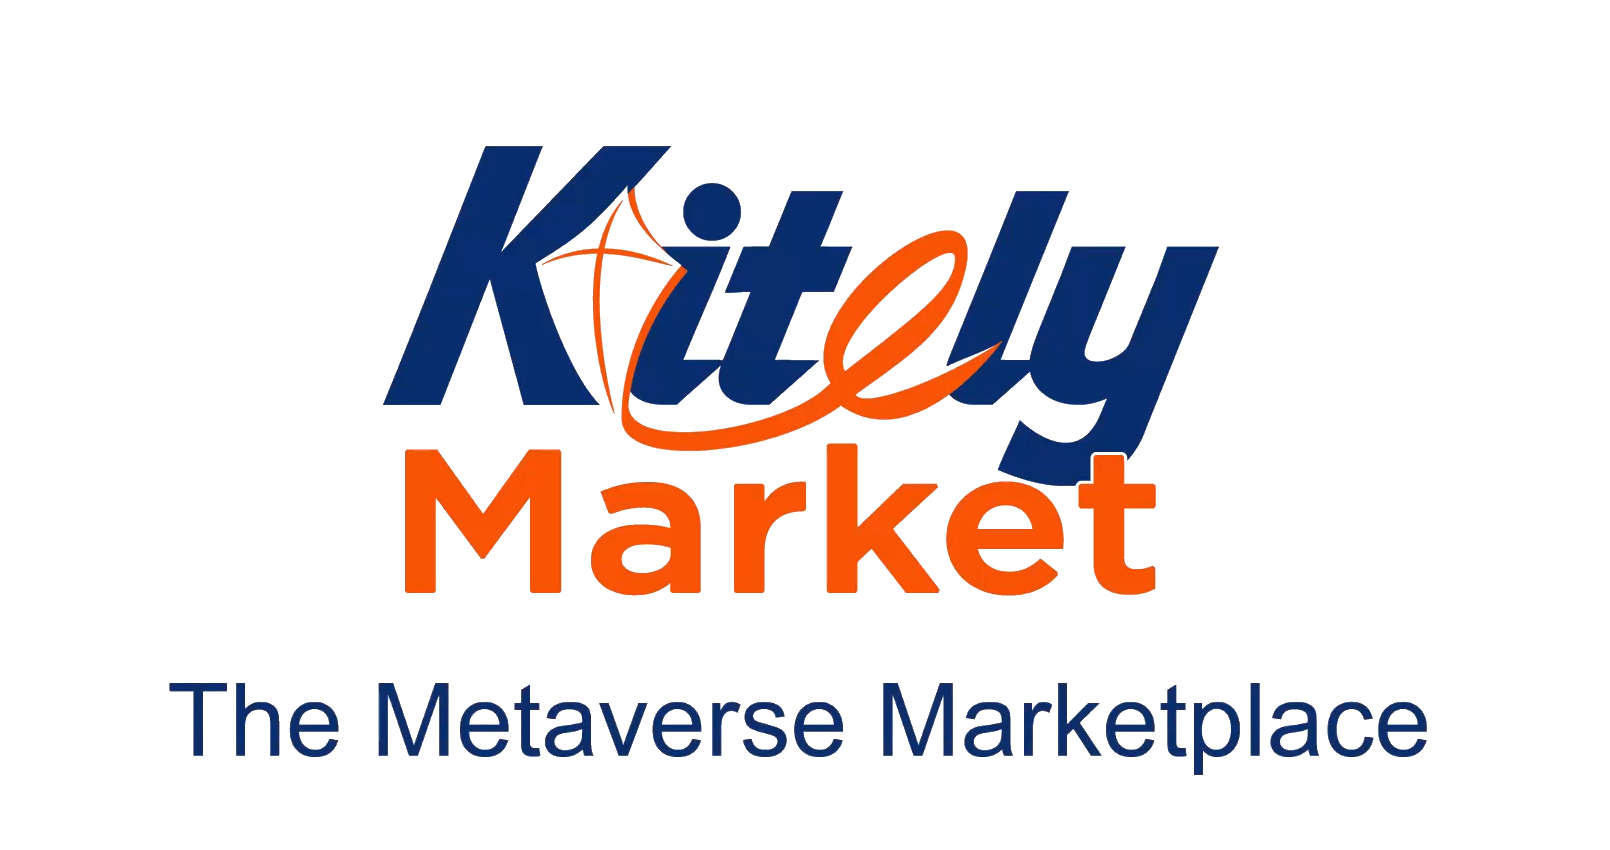 Kitely Market Passes $250,000 in Sales